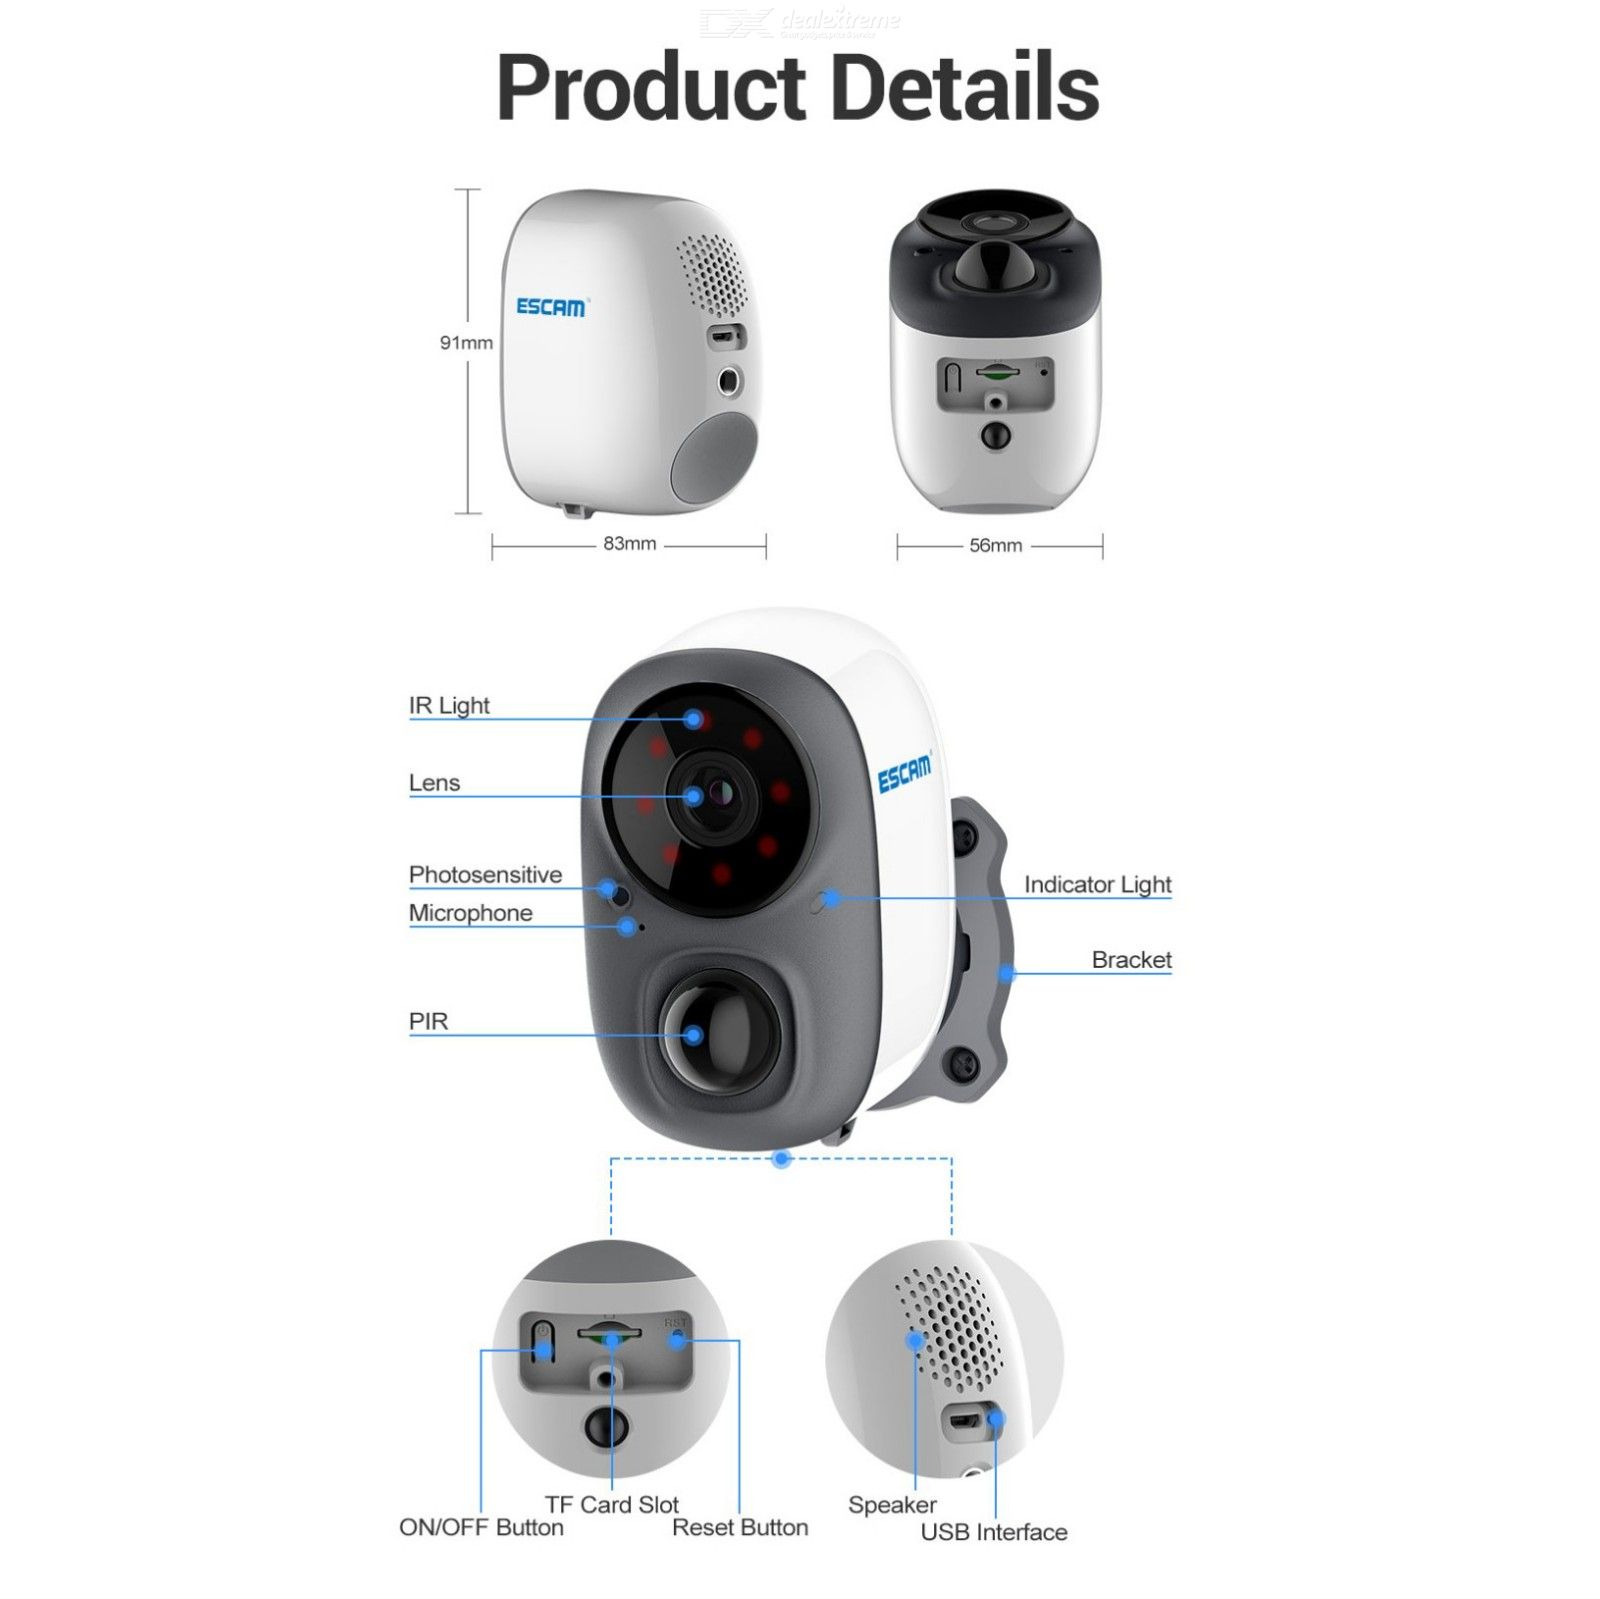 ESCAM G15 1080P Full HD AI Recognition Rechargeable Battery PIR Alarm Cloud Storage WiFi Camera